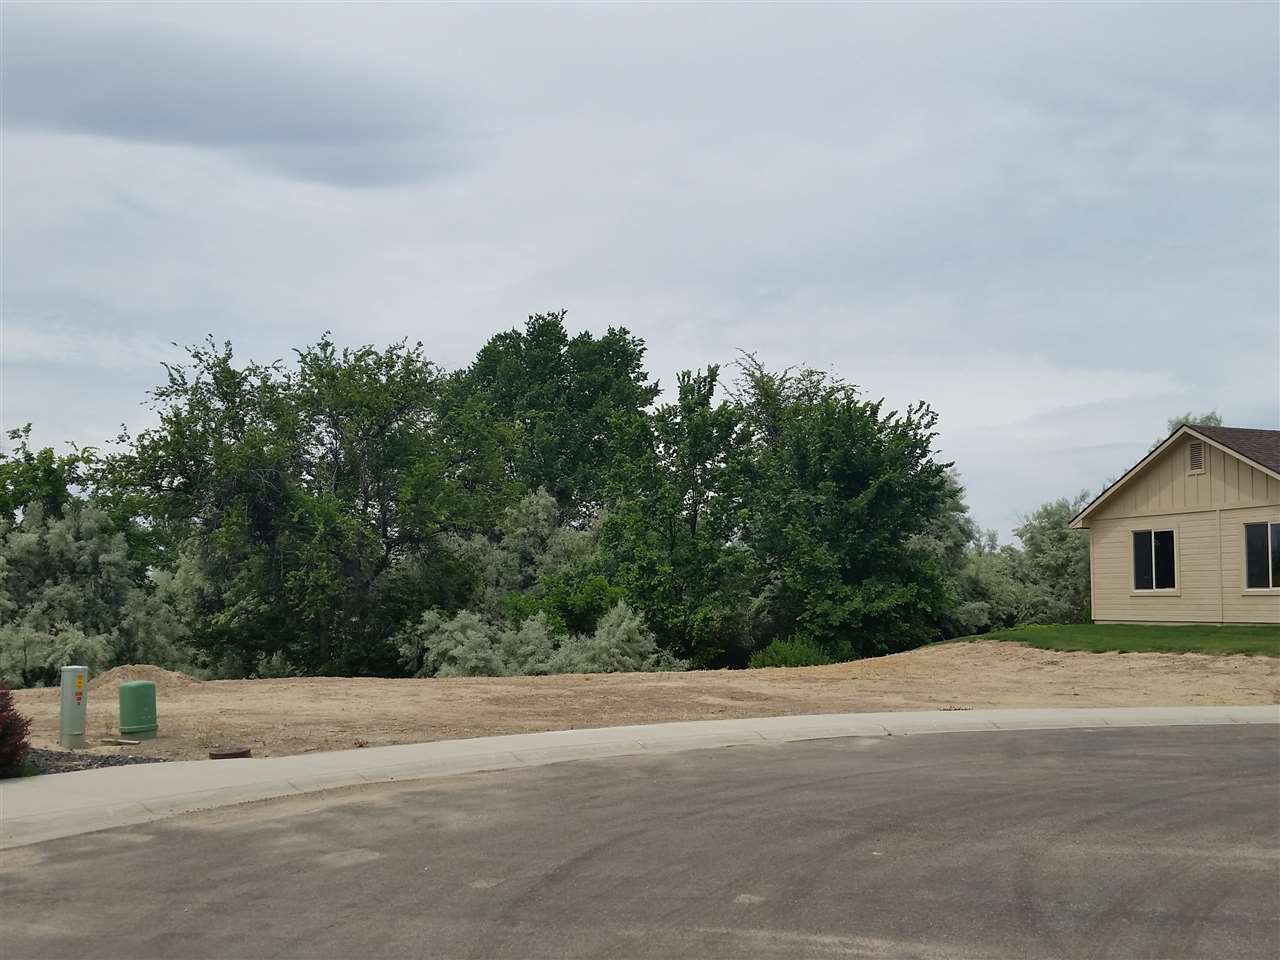 Additional photo for property listing at 105 Fern Ct  Parma, Idaho 83669